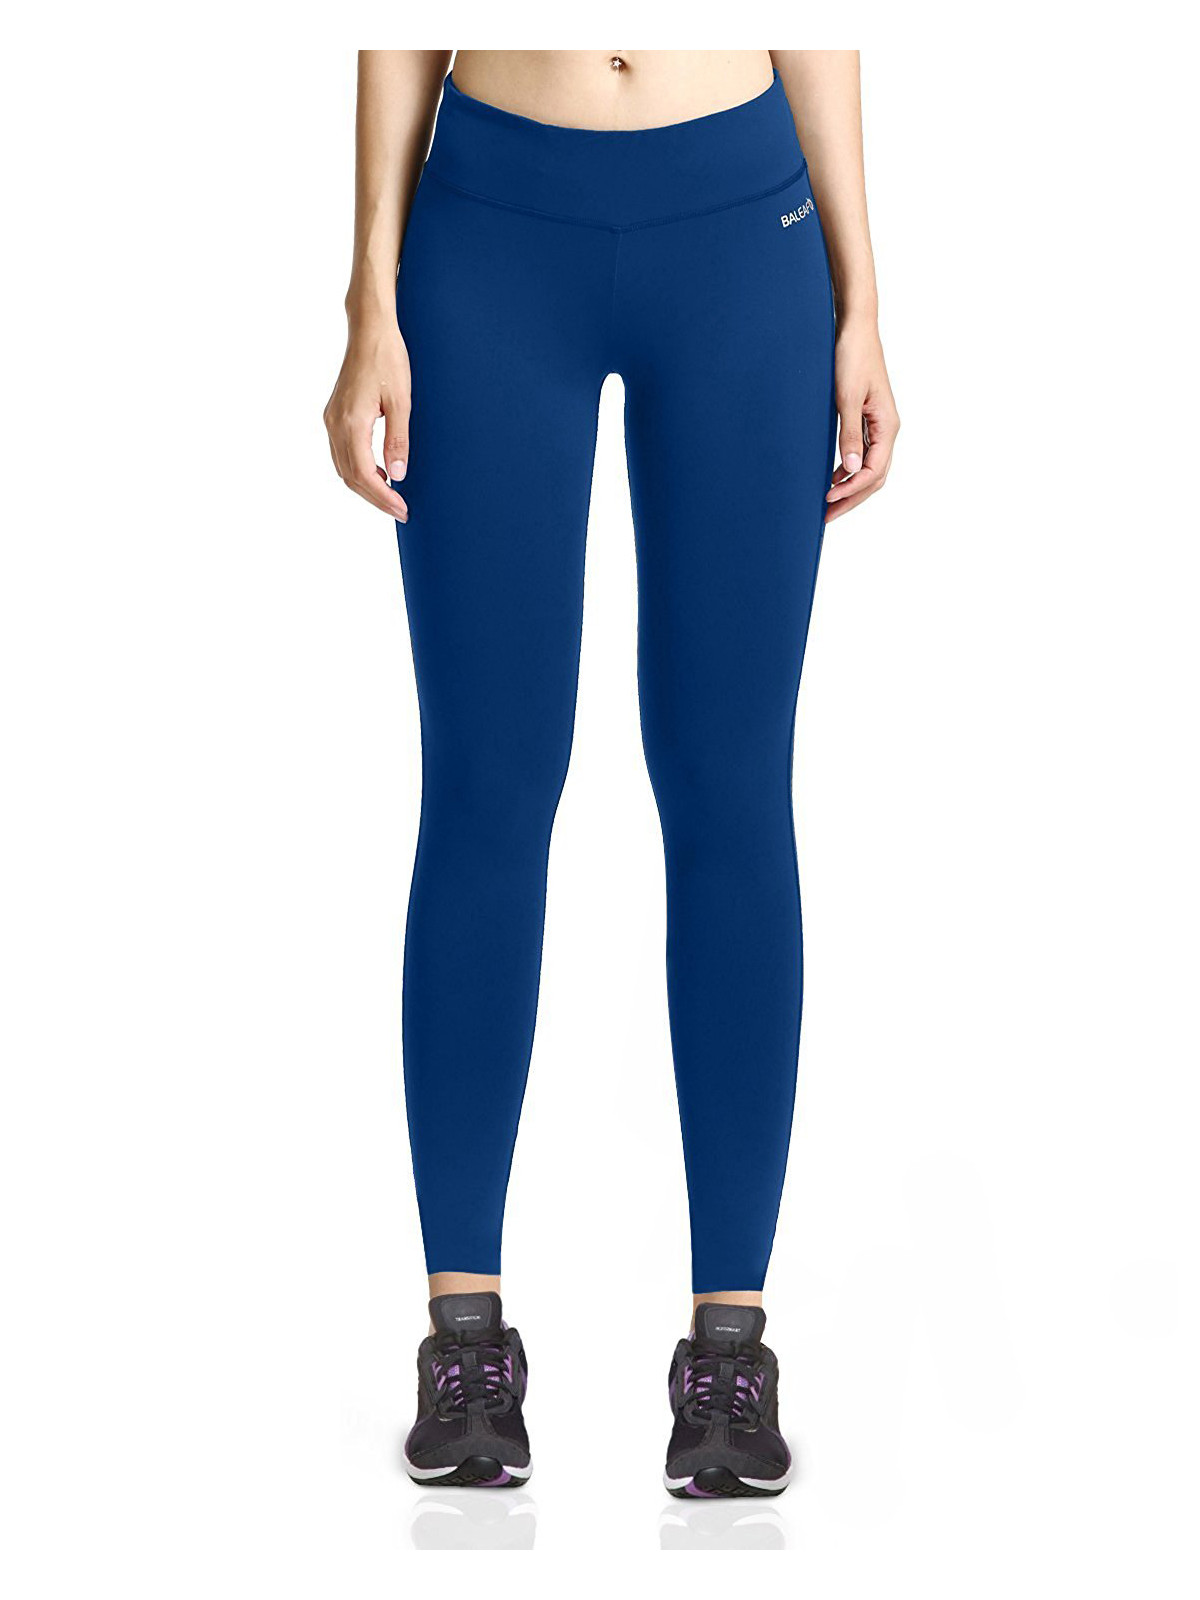 Women's Ankle Legging Inner Pocket Non See-through Fabric Estate Blue